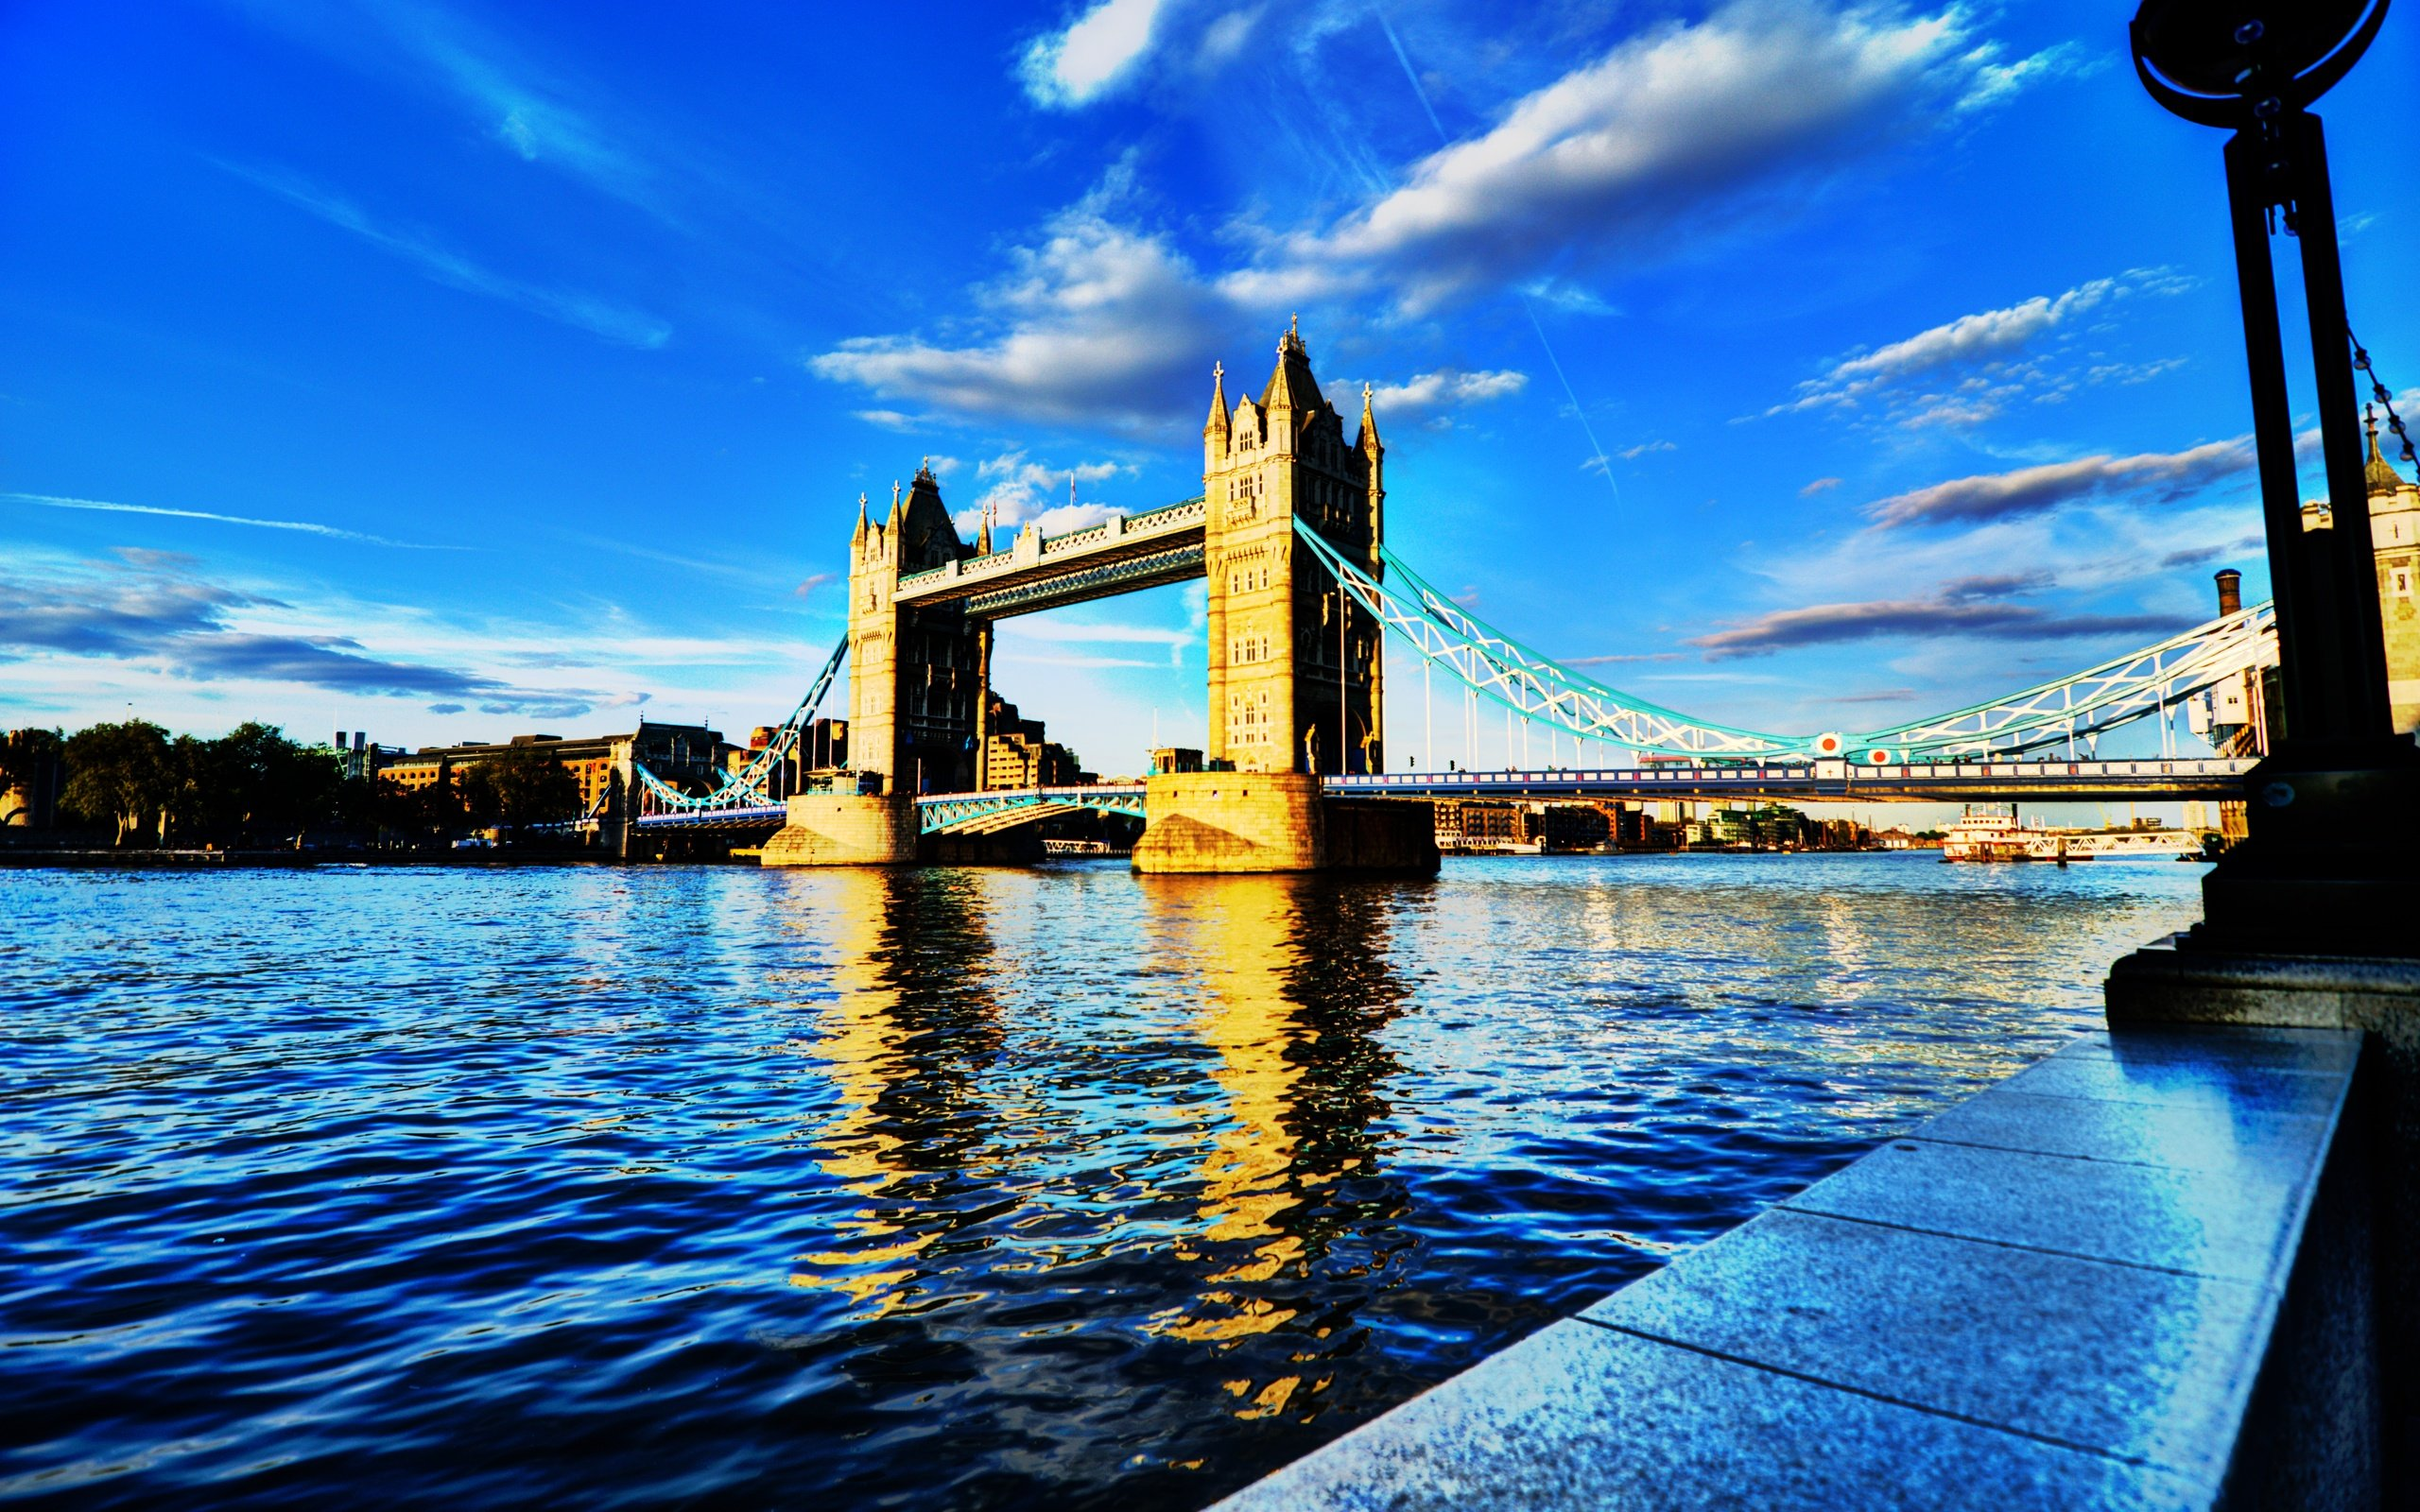 london wallpapers hd a18 hd desktop wallpapers